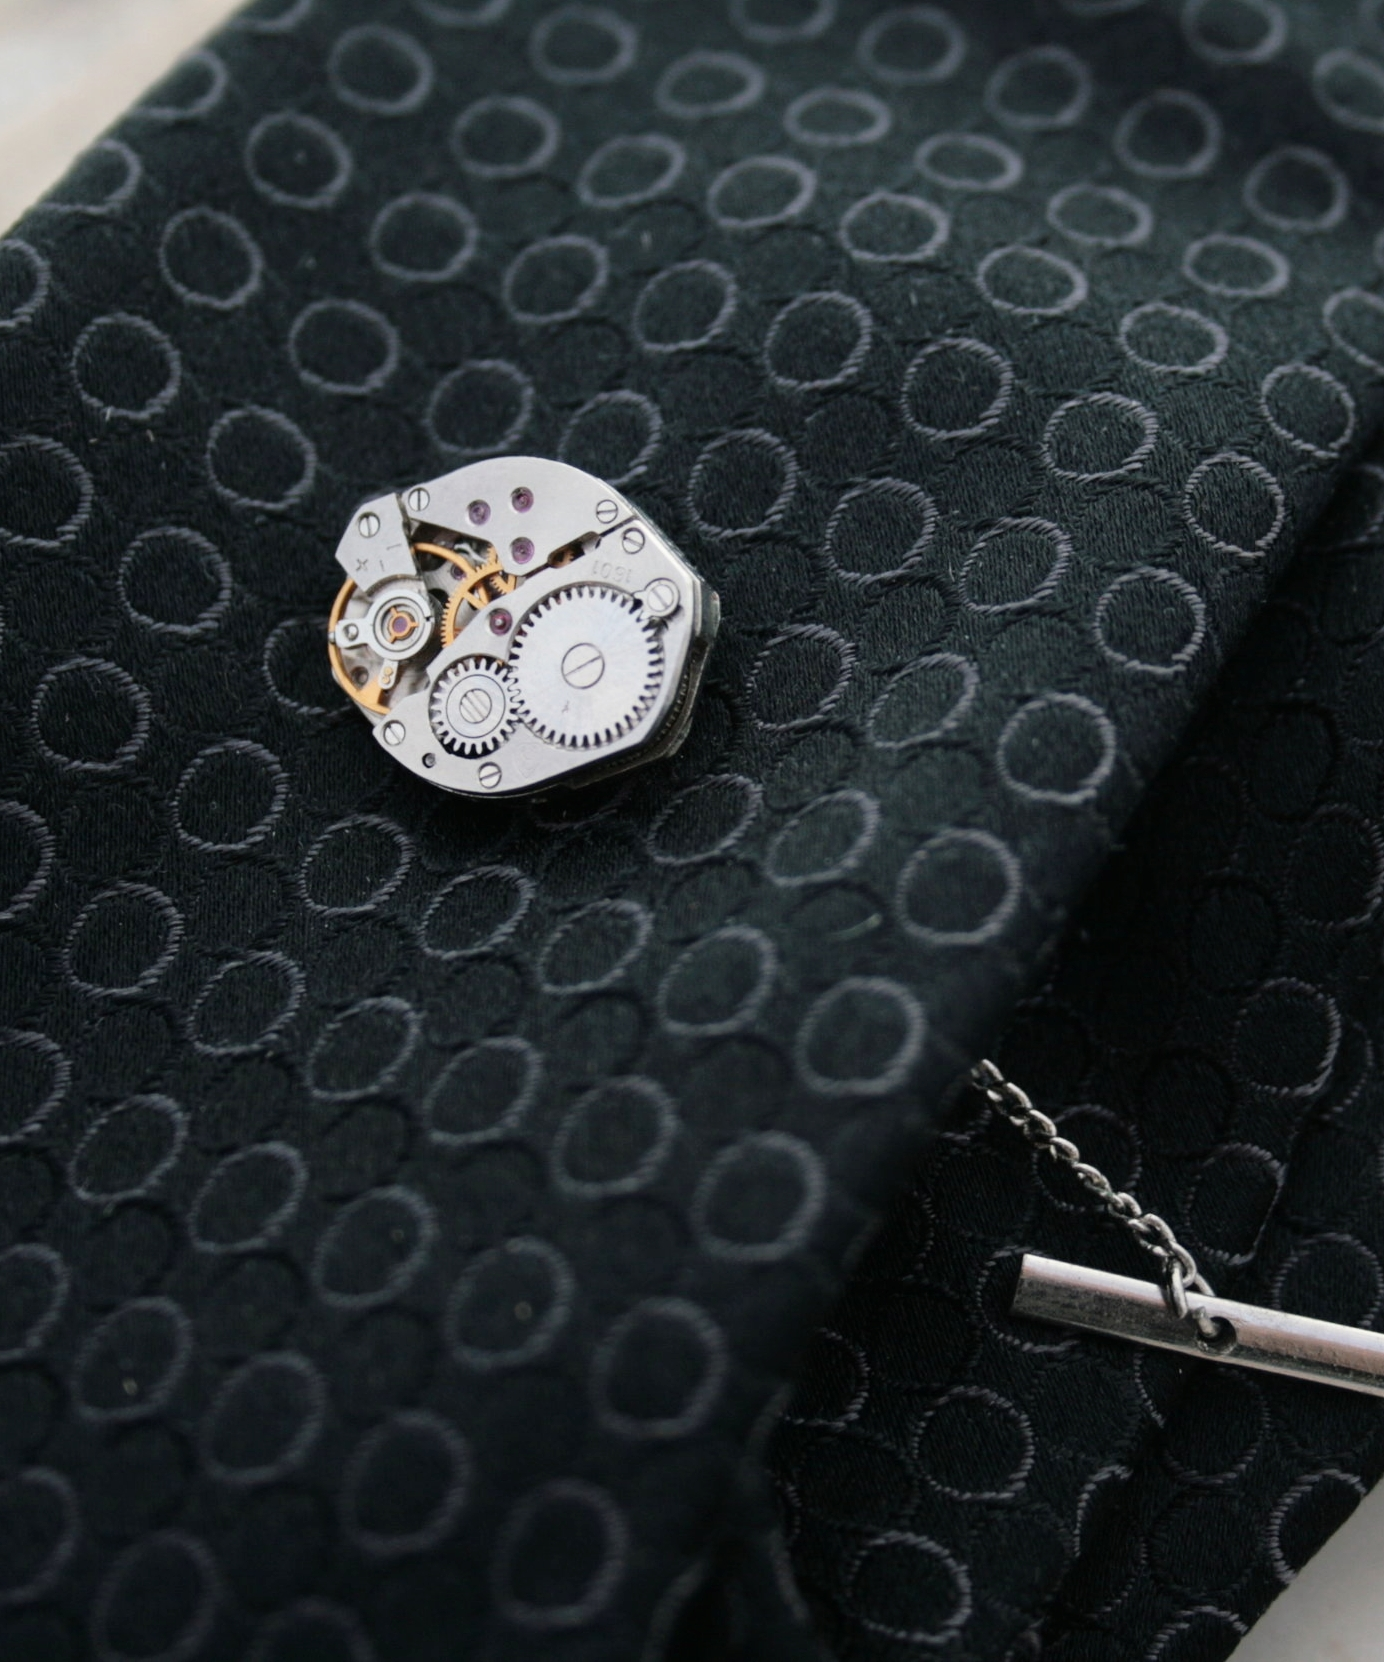 Tie Pin with Chain Industrial Tie Tack for Dapper Man